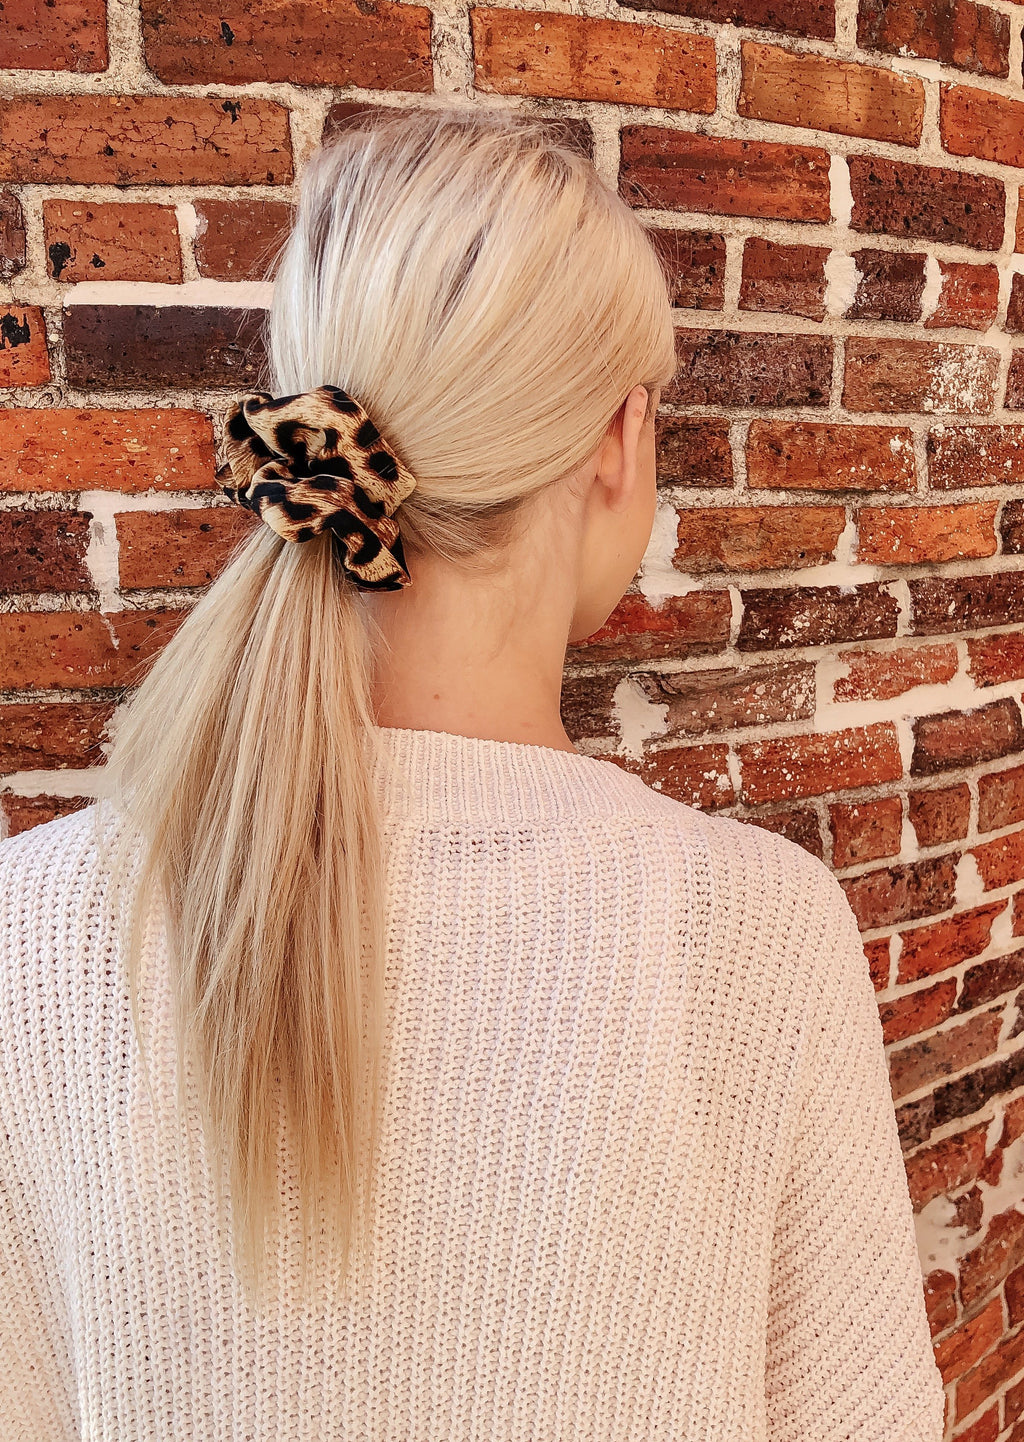 Alpha Brown Leopard Print Scrunchie - Caroline Hill